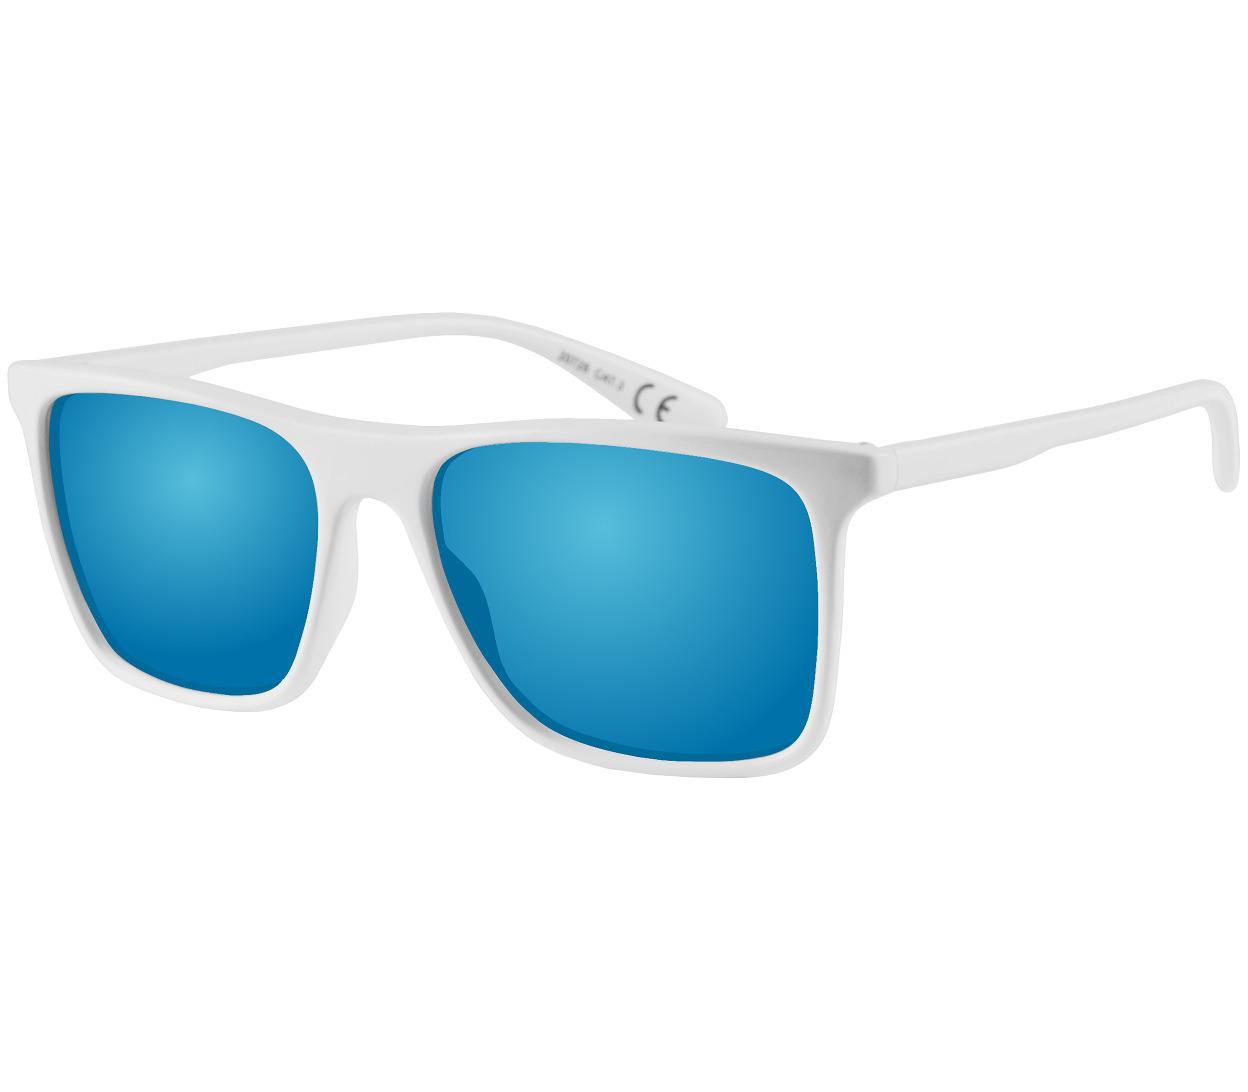 Main Image (Angle) - Summit (White) Wayfarer Sunglasses